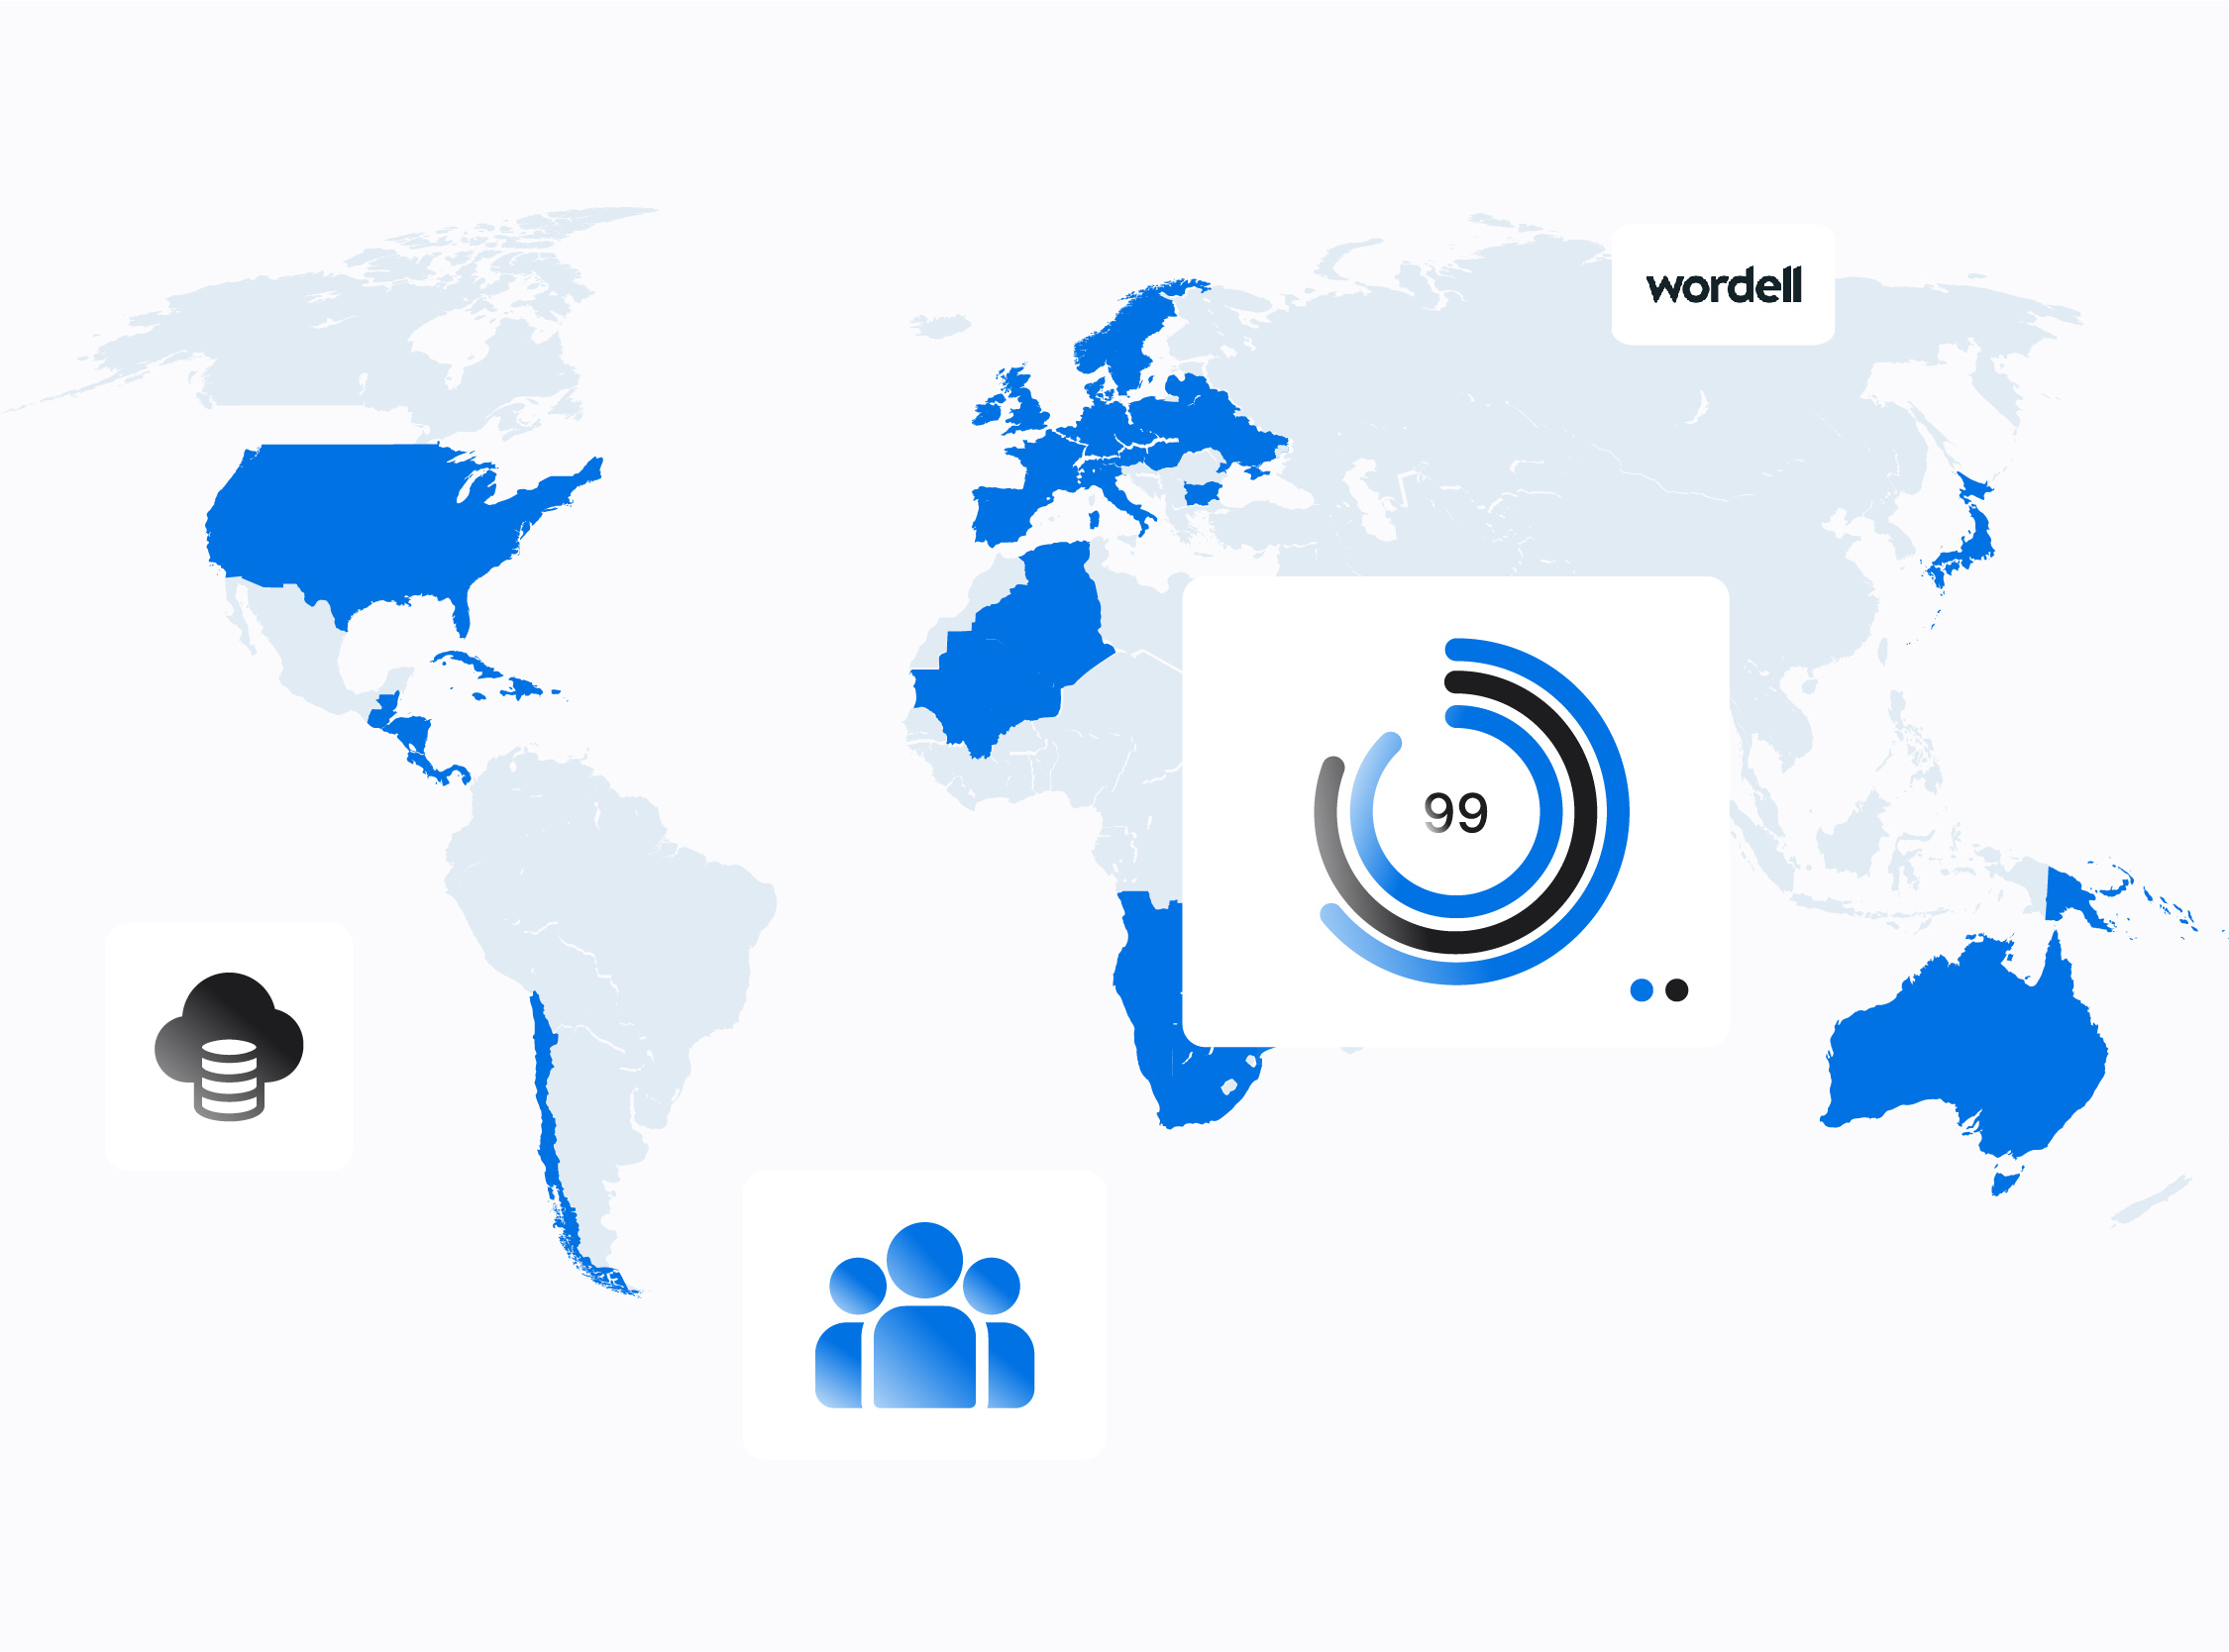 a global view of business and digital reach for revenue growth potential